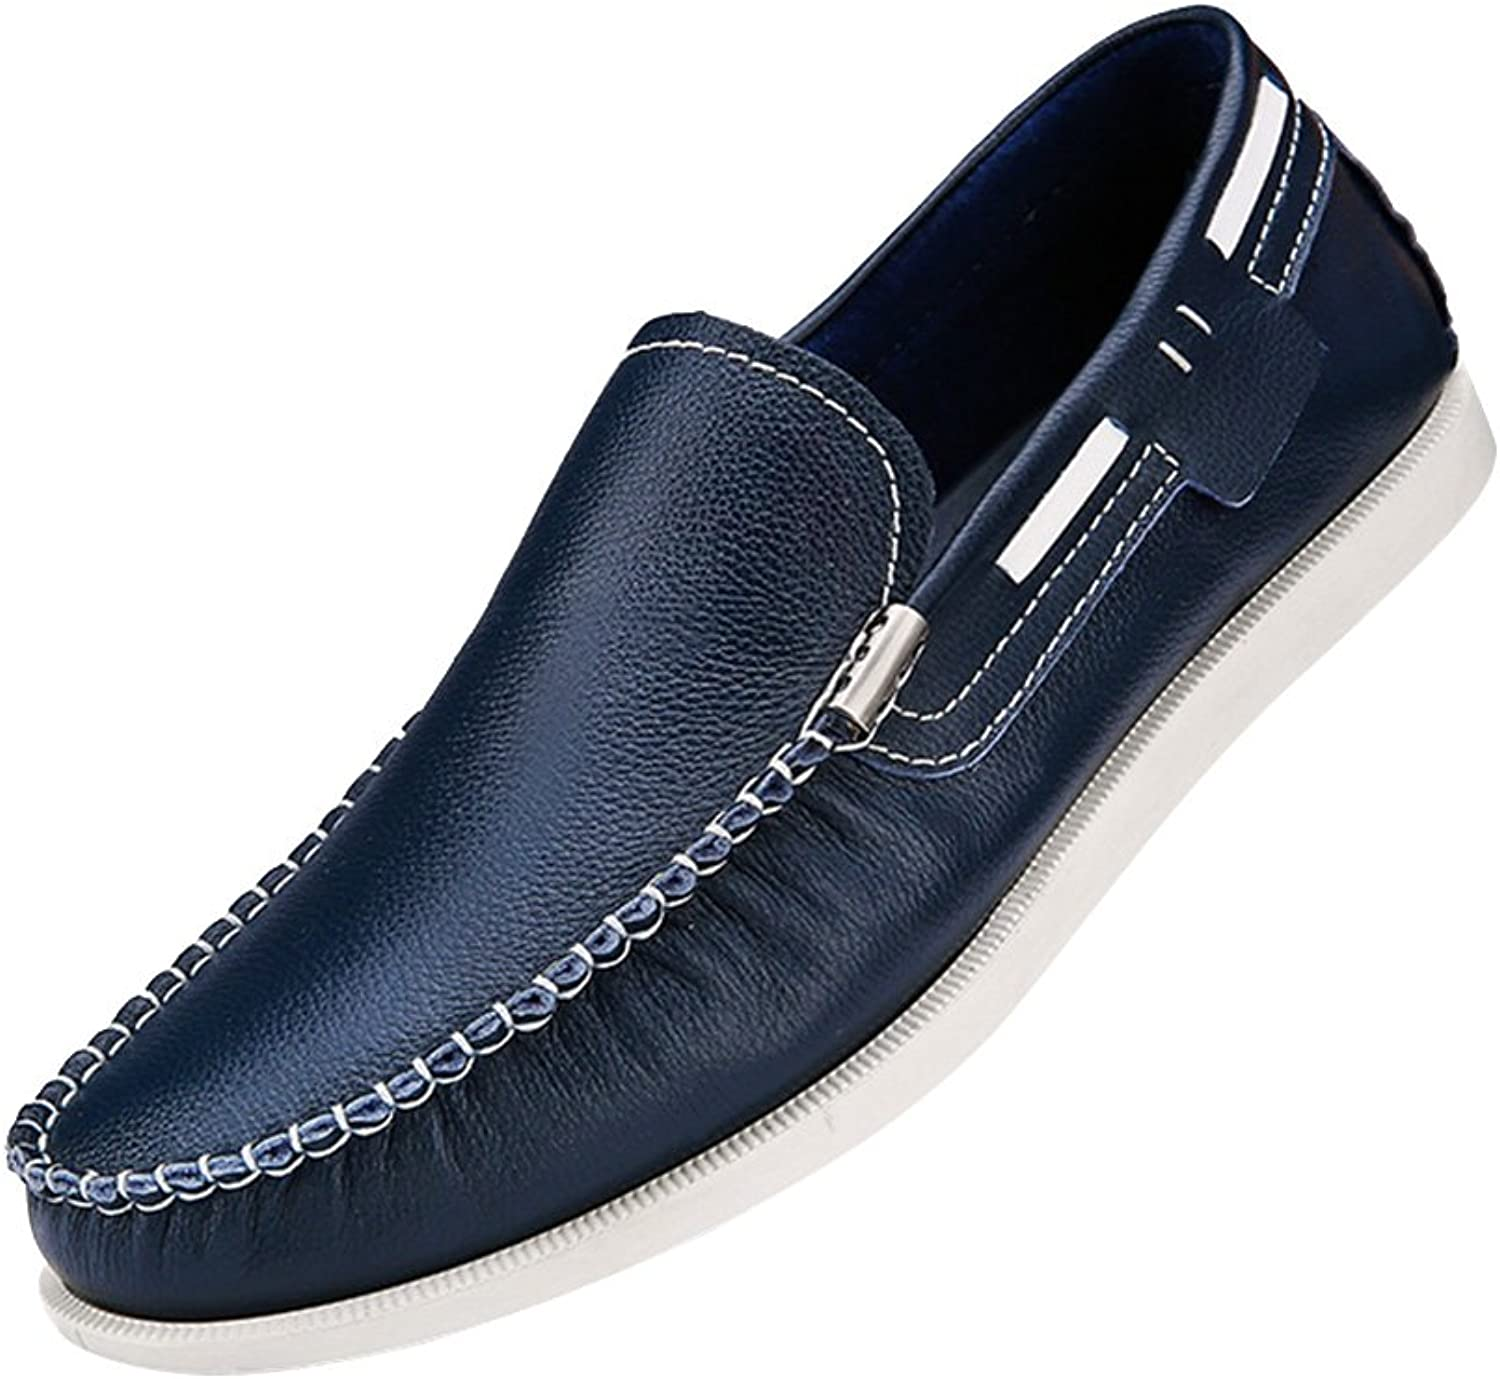 Snowman Snowman Snowman Lee herrar läder and Rubber Driver skor mode Casual Ruched Slip On Loafers  i stadionens kampanjer